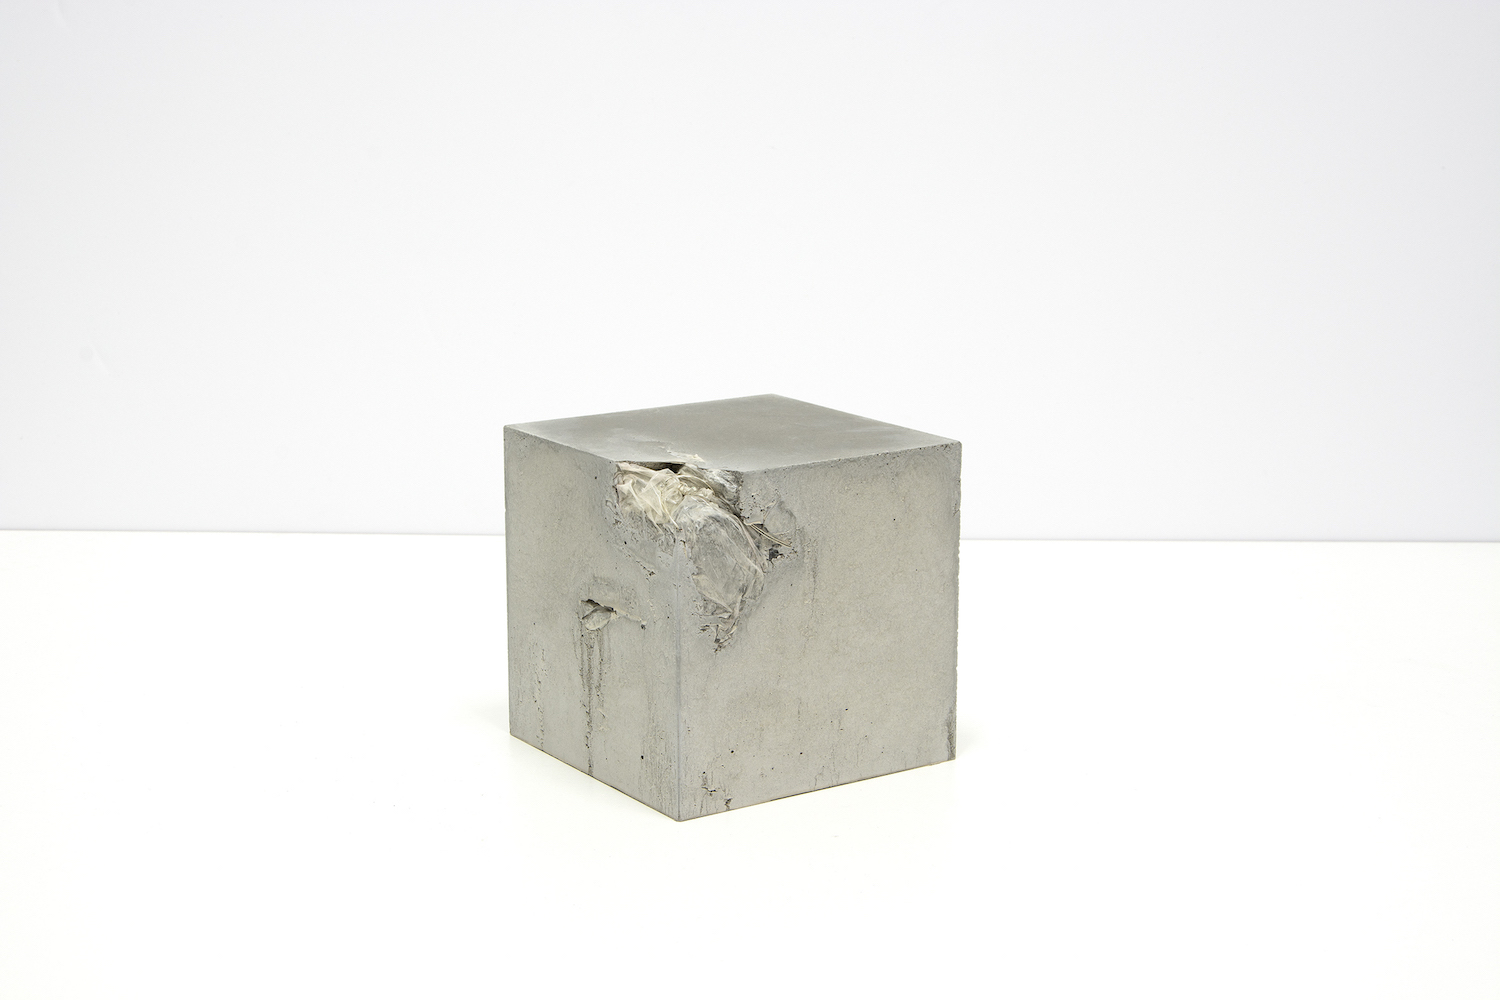 Michael John Whelan Inclusions (LED party balloon) 2018 Cast concrete cube containing a LED party balloon retrieved from the Persian Gulf. 15x15x15 cm Unique